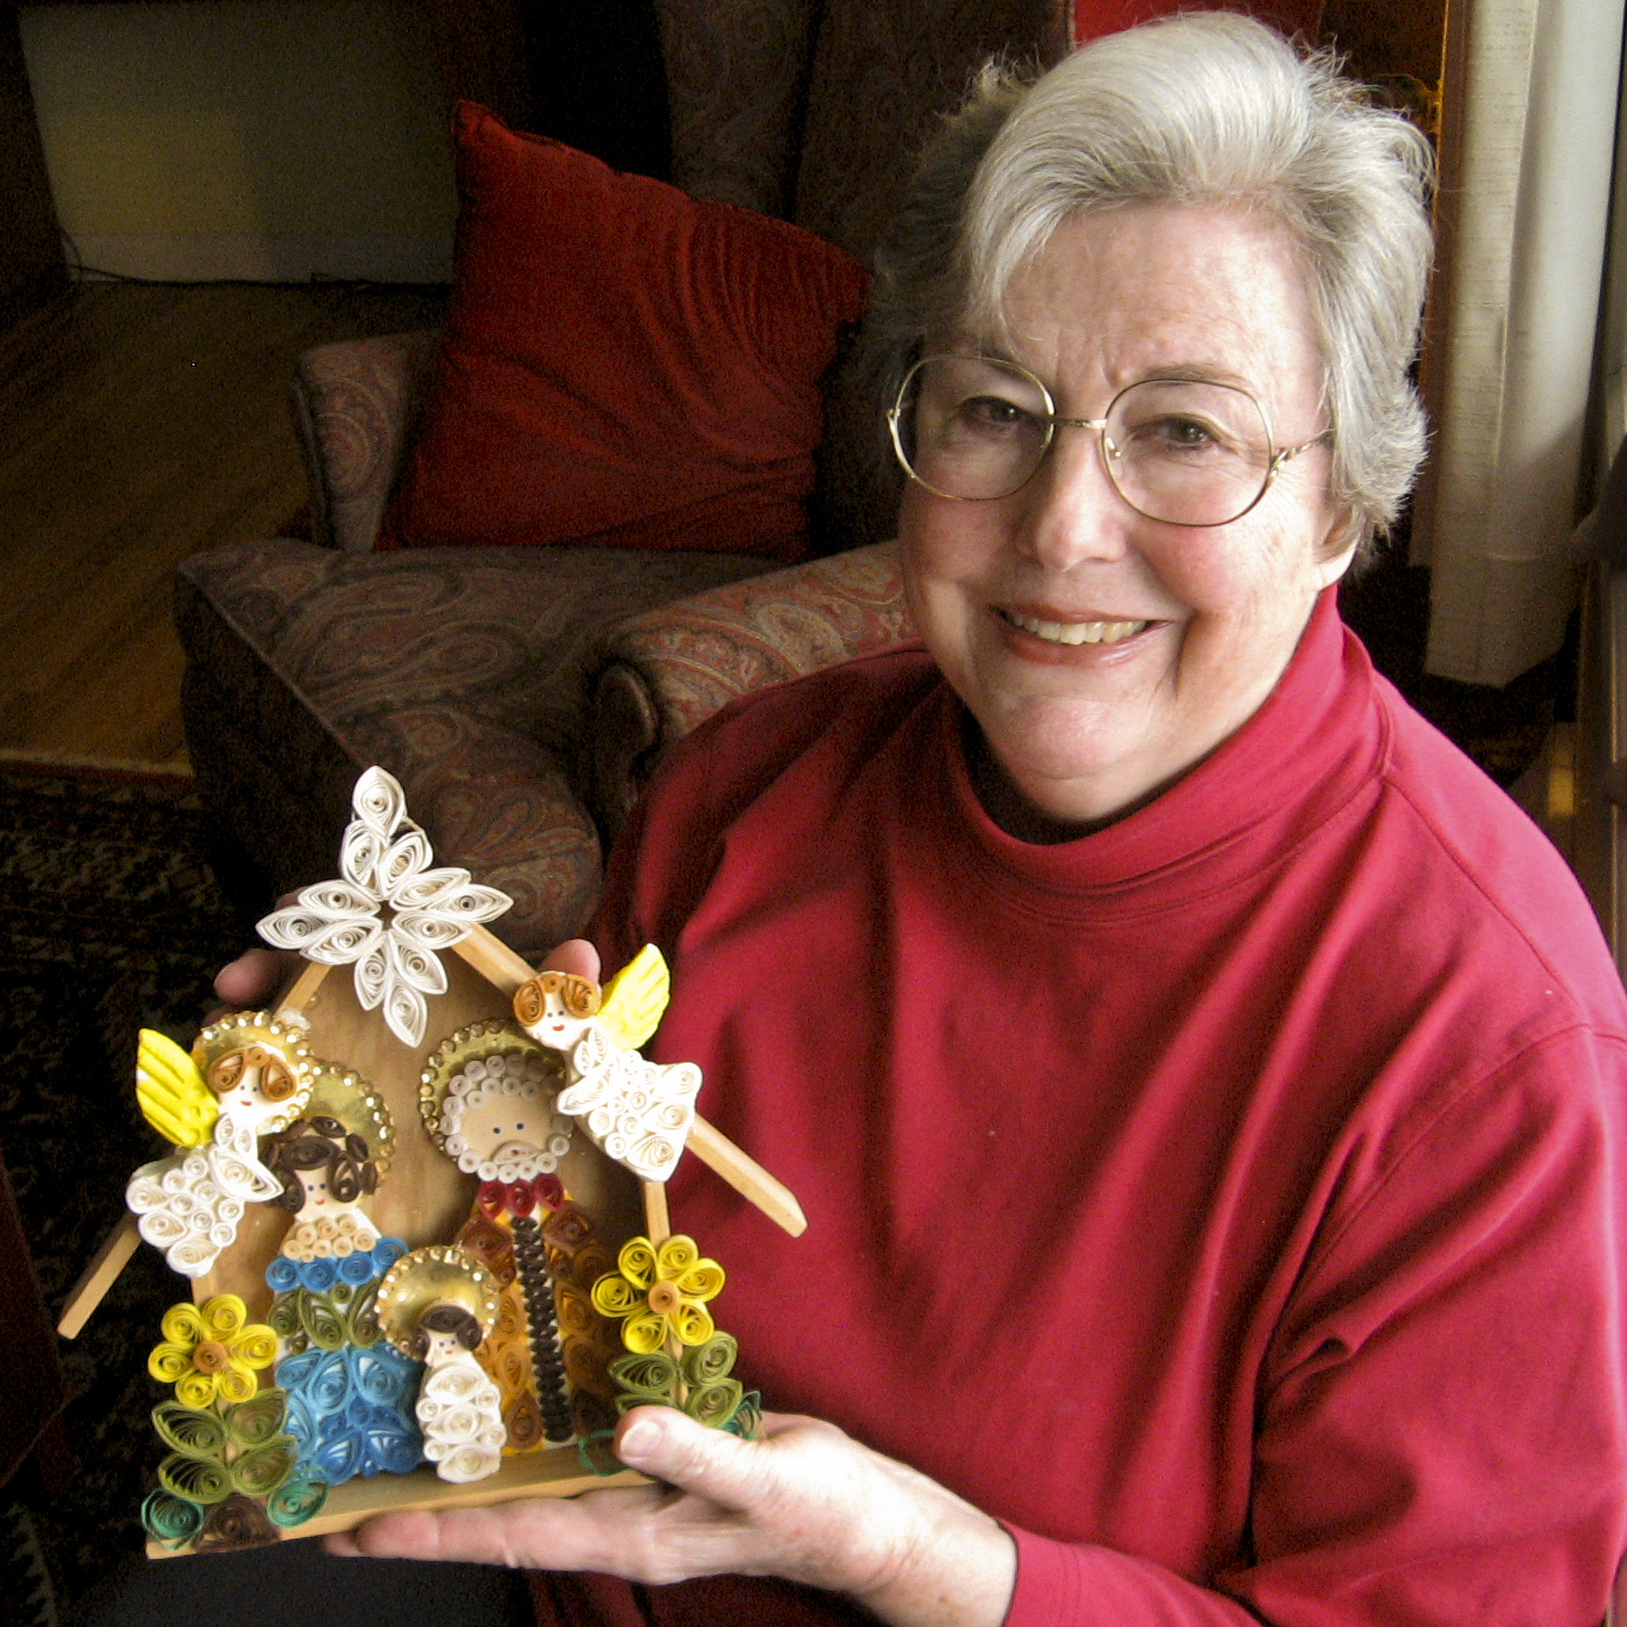 Dixon with one of the estimated 1,450 Nativities that she hopes to one day include in a museum.